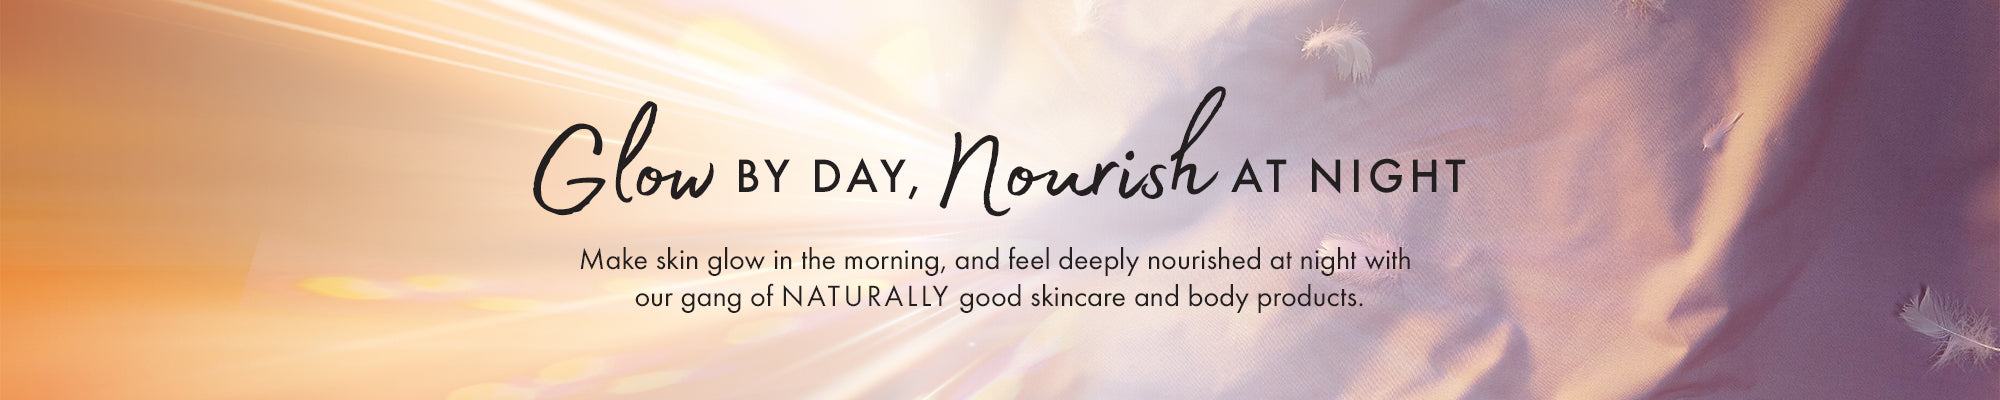 glow by day, nourish at night